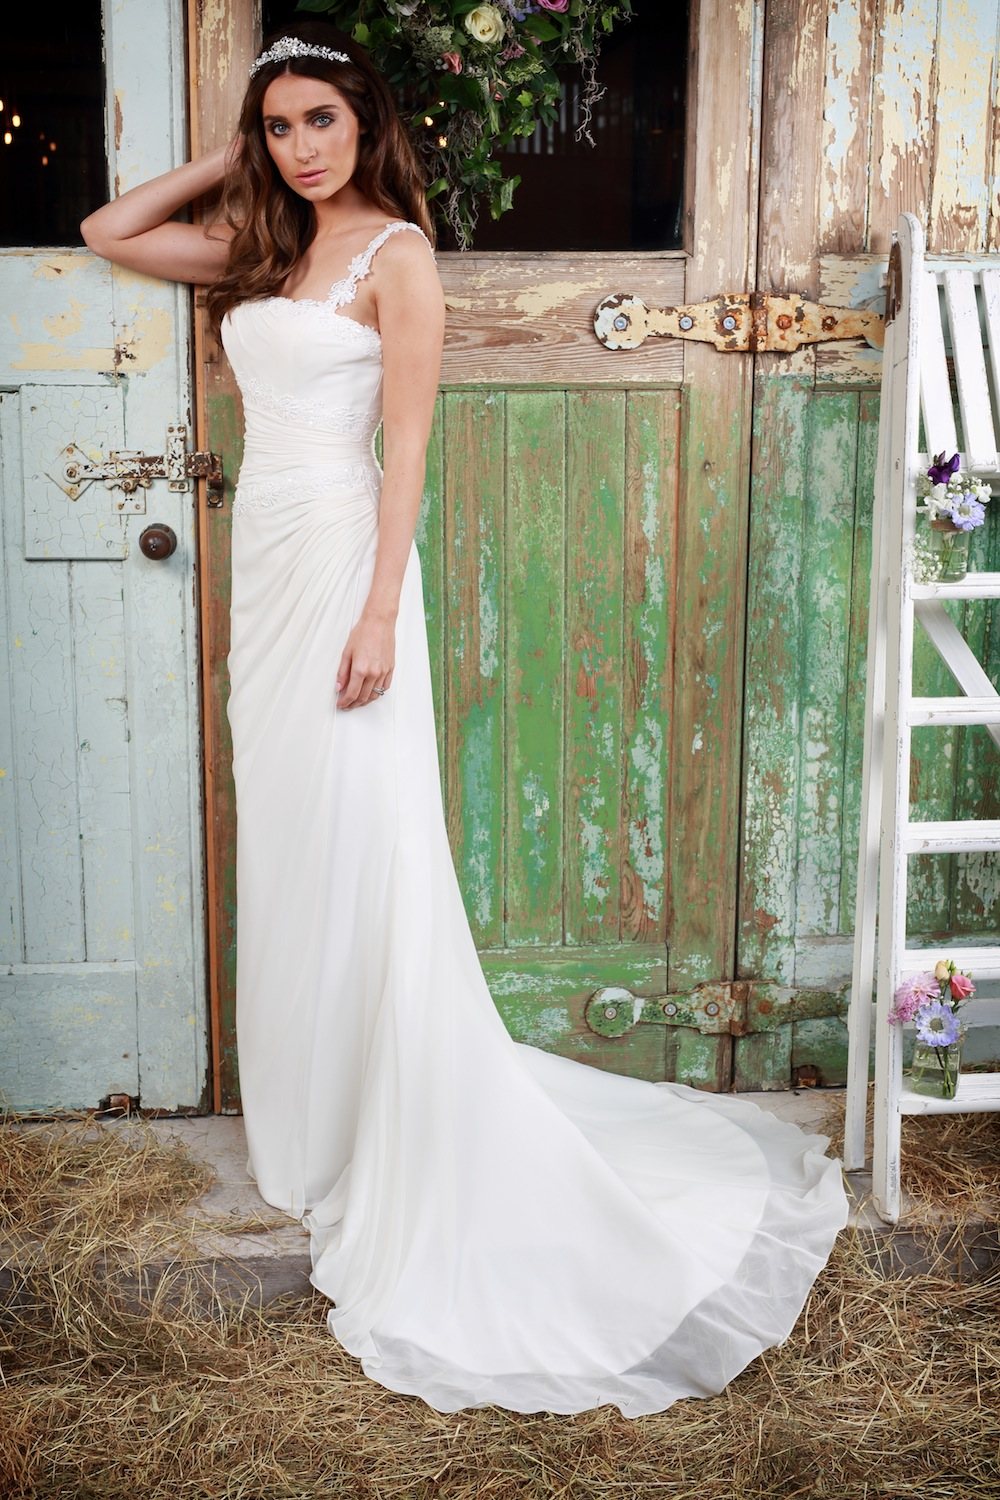 Amanda Wyatt Wedding Gown : Rochelle - square neck is finished with flower detailed straps. The delicate material is delicately pleated to sweep around and show off a brides shape wonderfully.